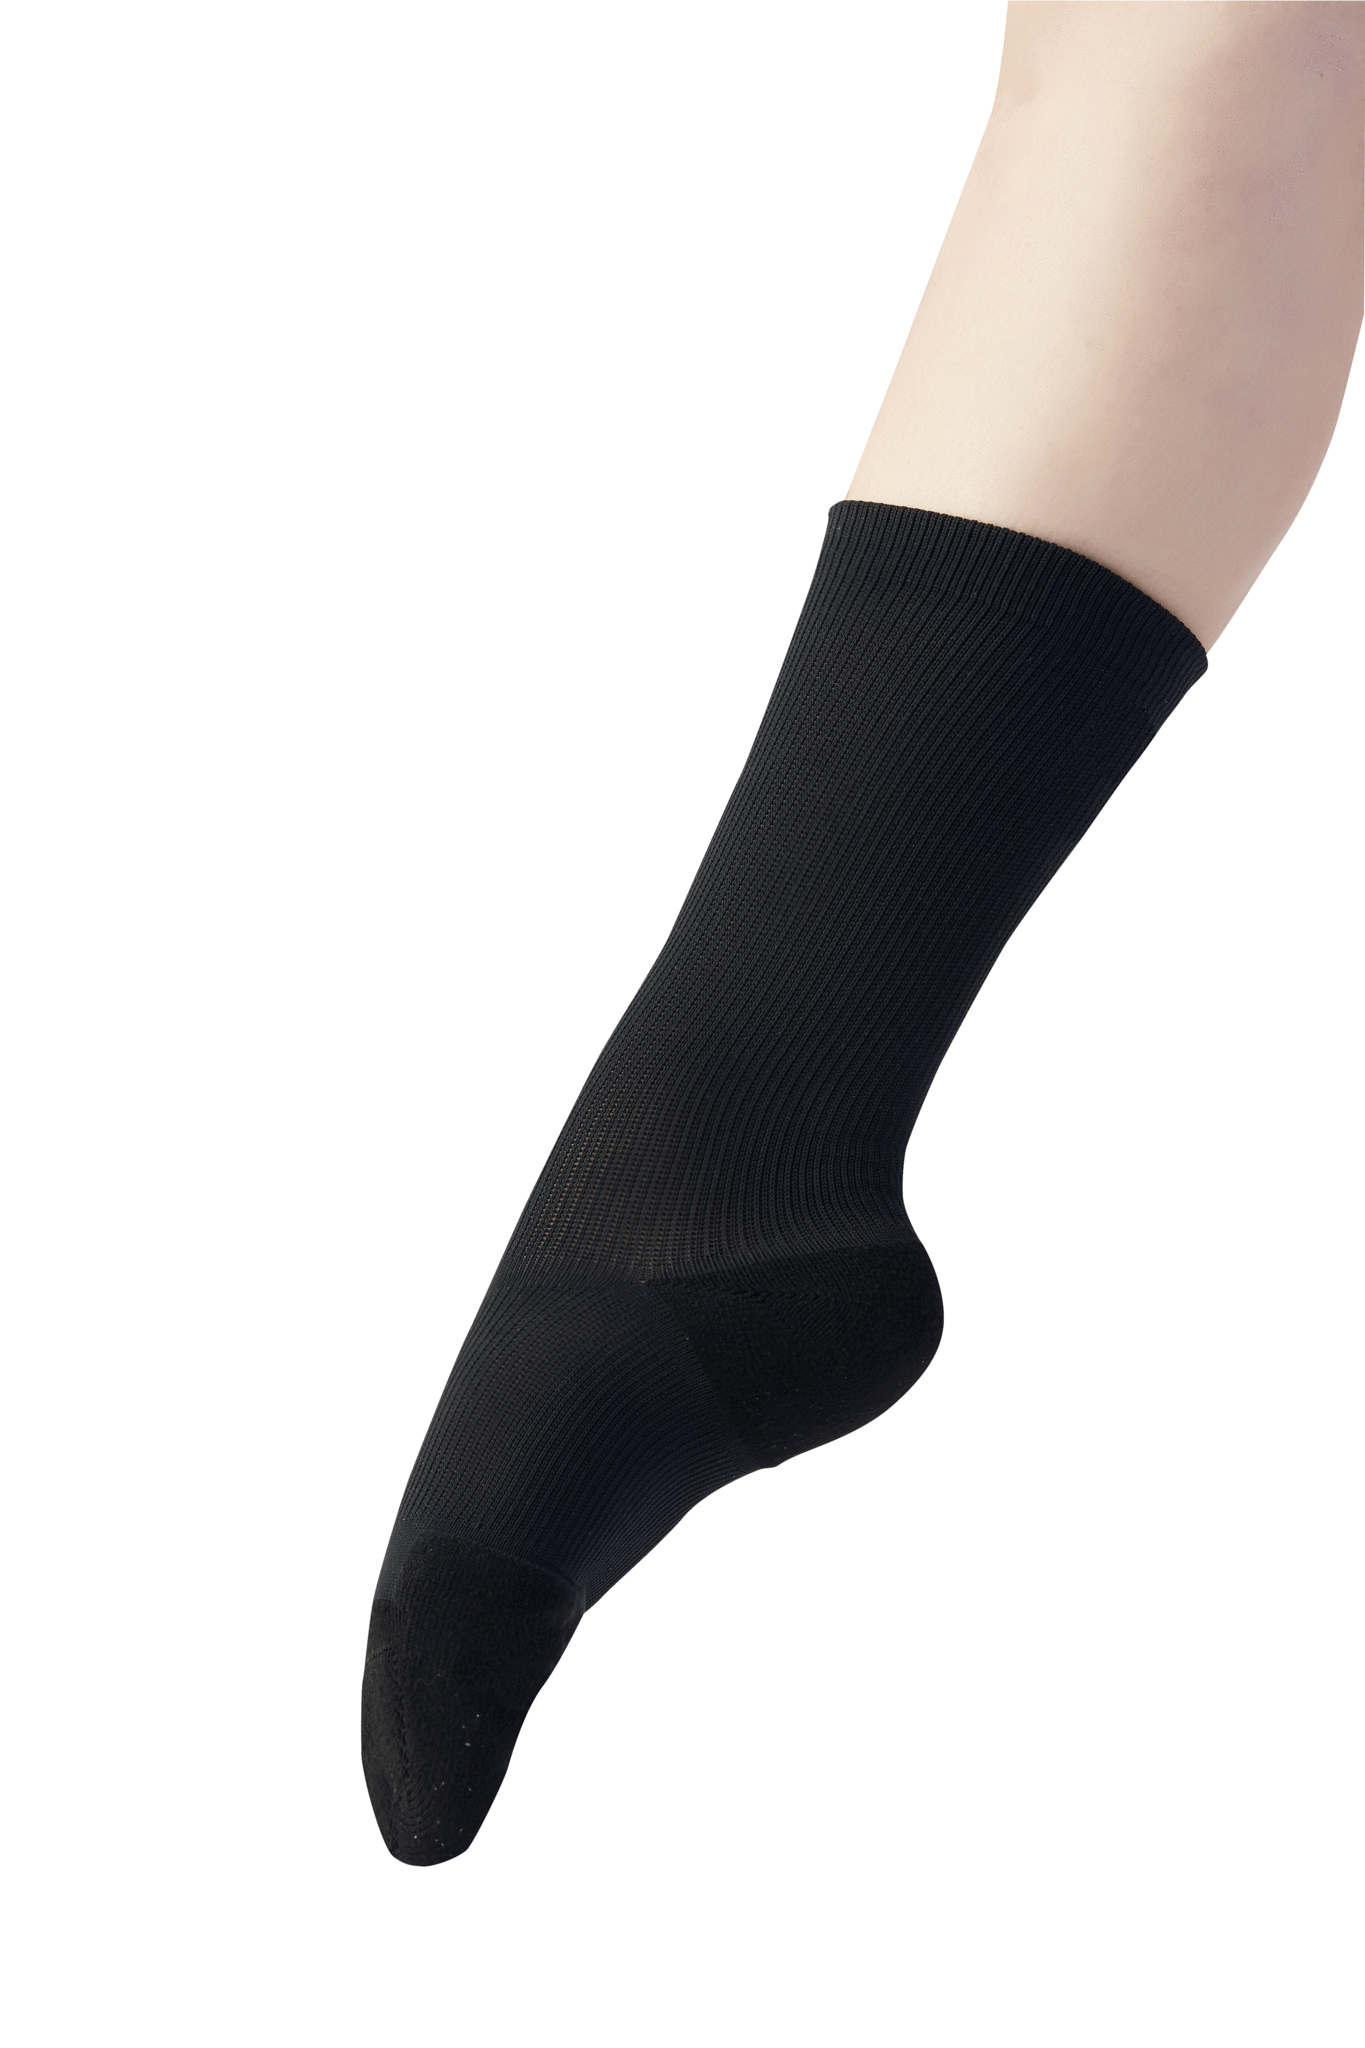 Apolla - Socks - Mid Calf Recovery  - THE INIFINITE SHOCK with traction